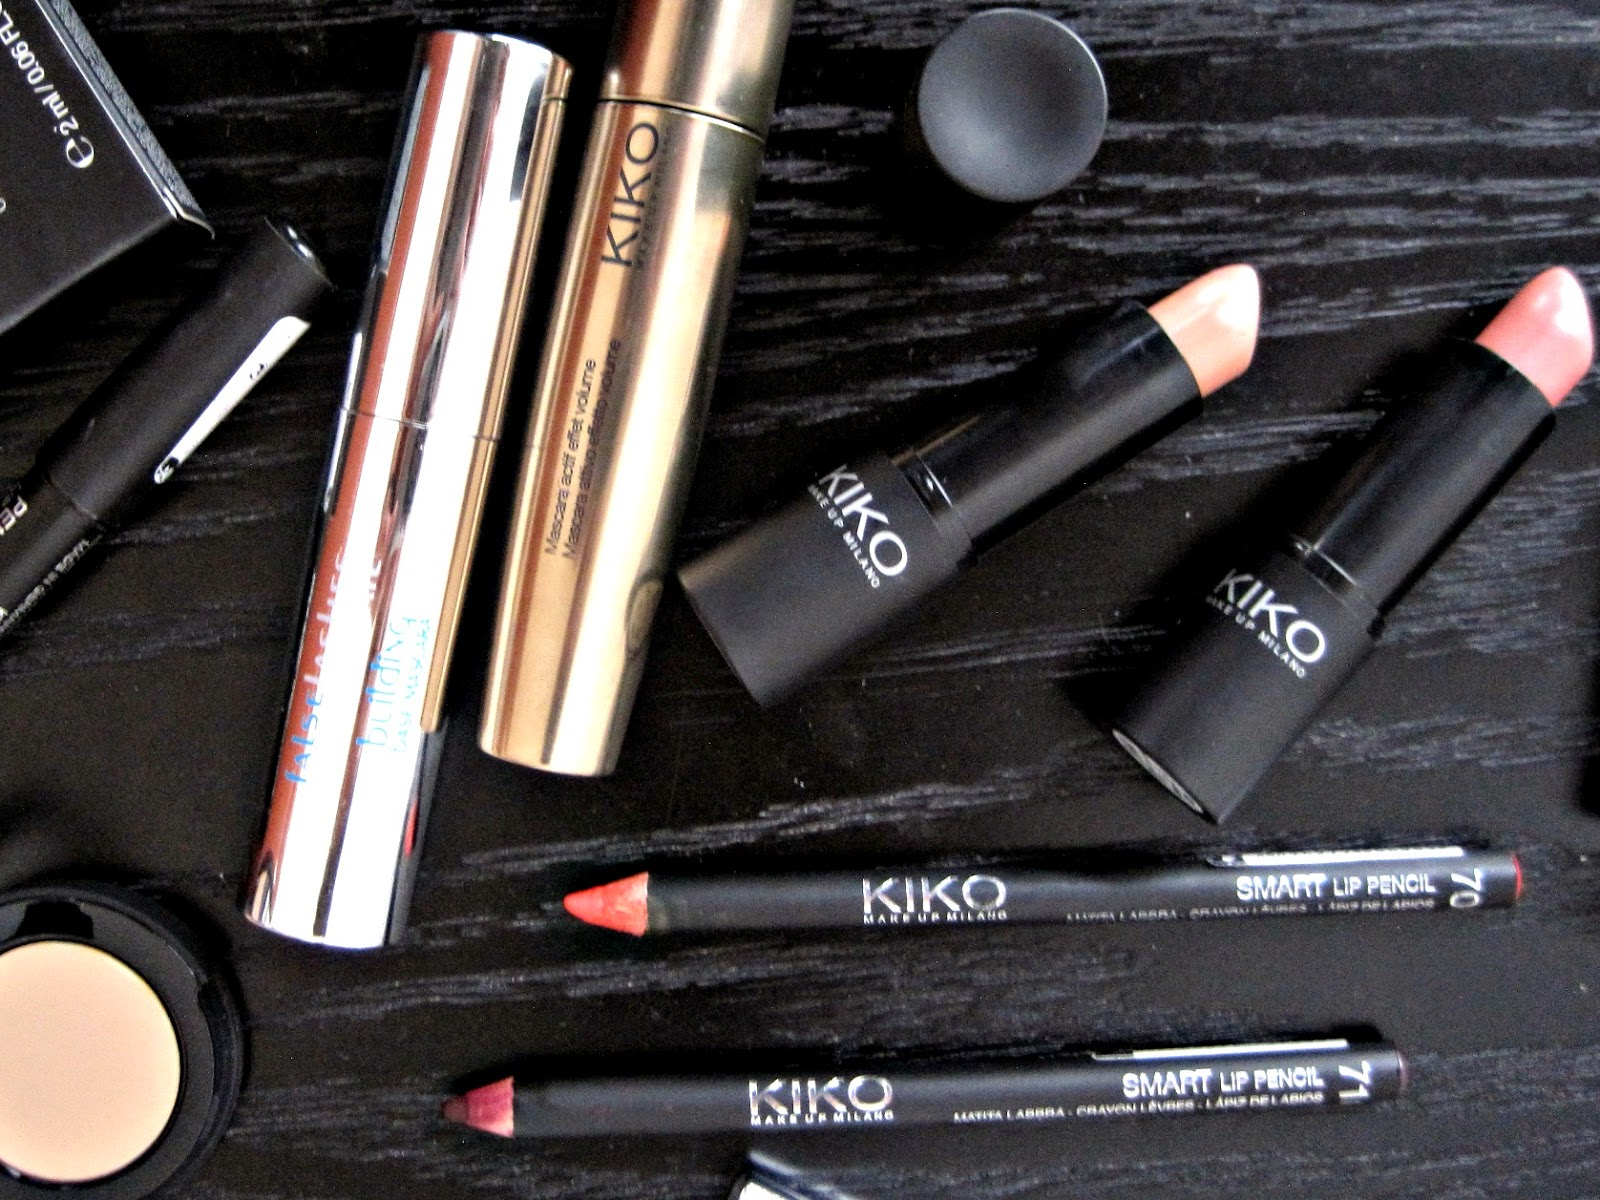 kiko smart lip pencil swatch lipstick 900 902 swatch mascara volumeyes full coverage concealer kiko